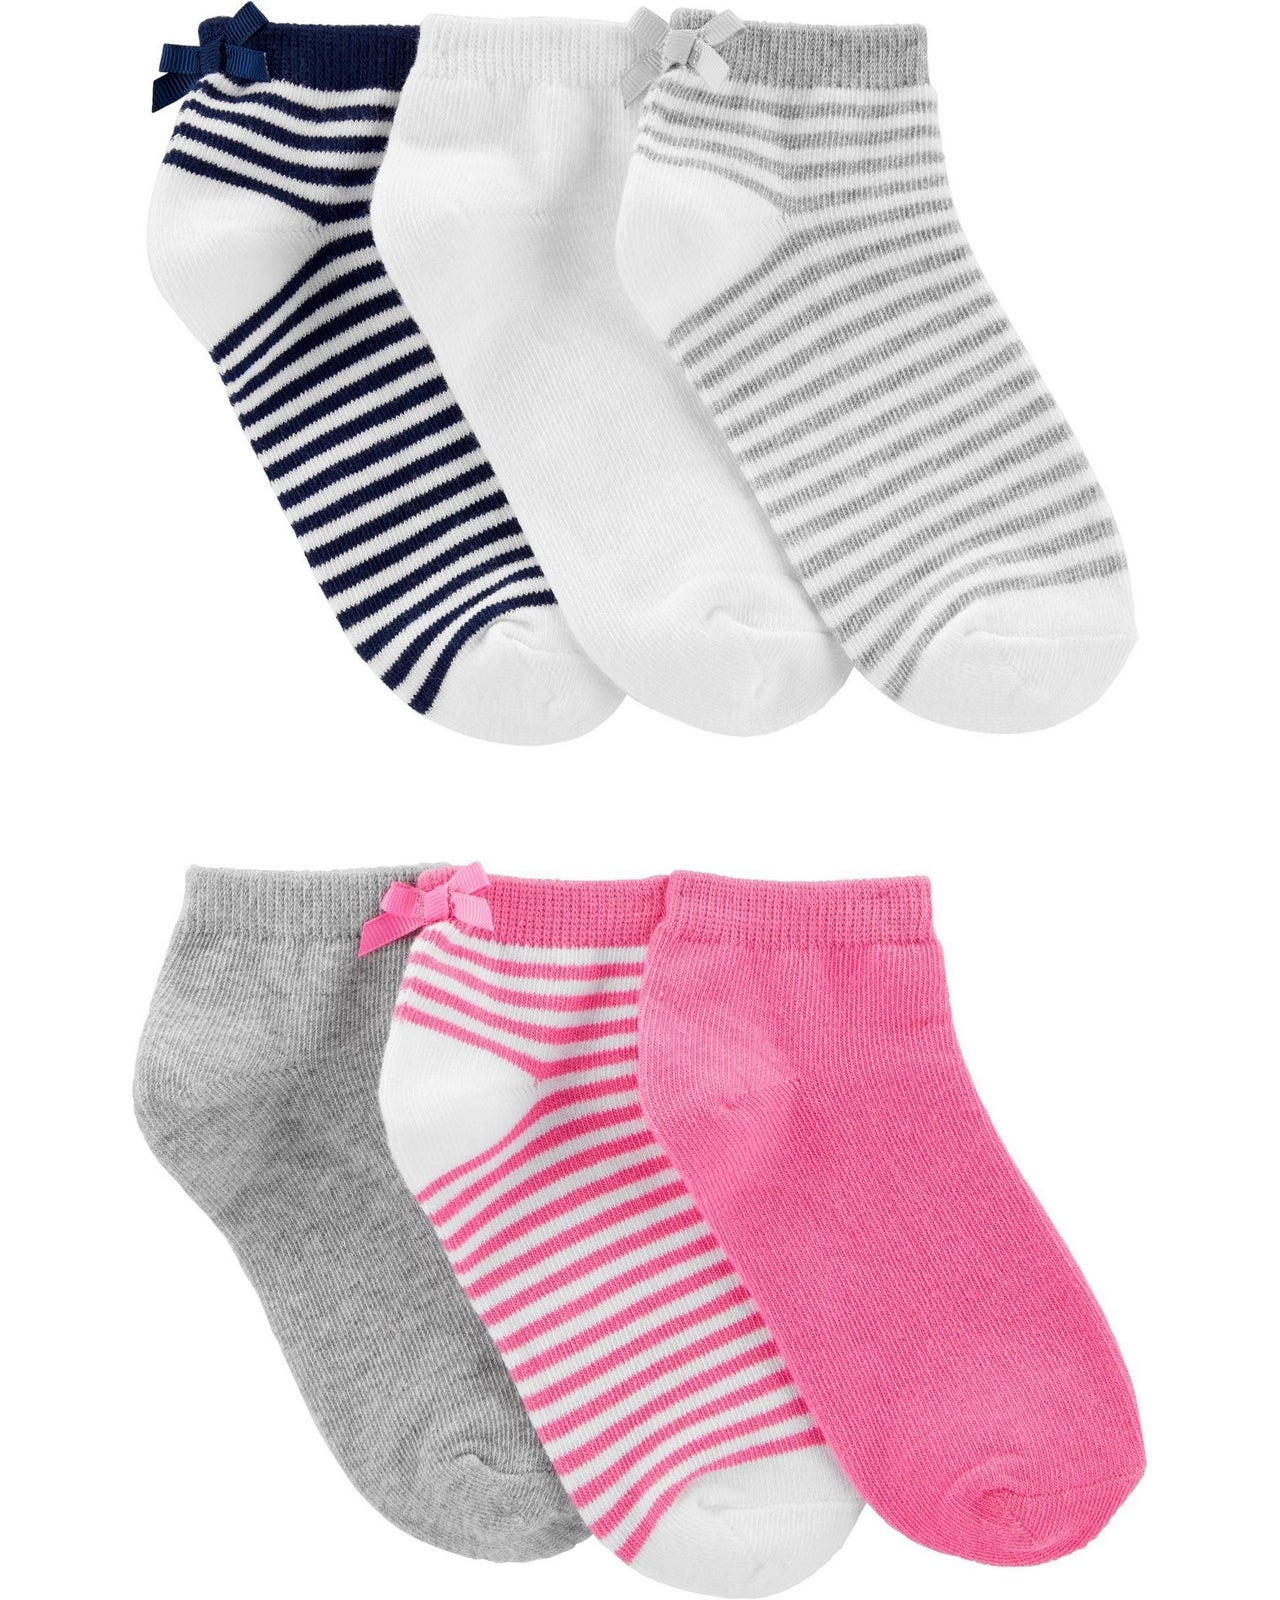 Carters 6-Pack Ankle Socks 3H760210